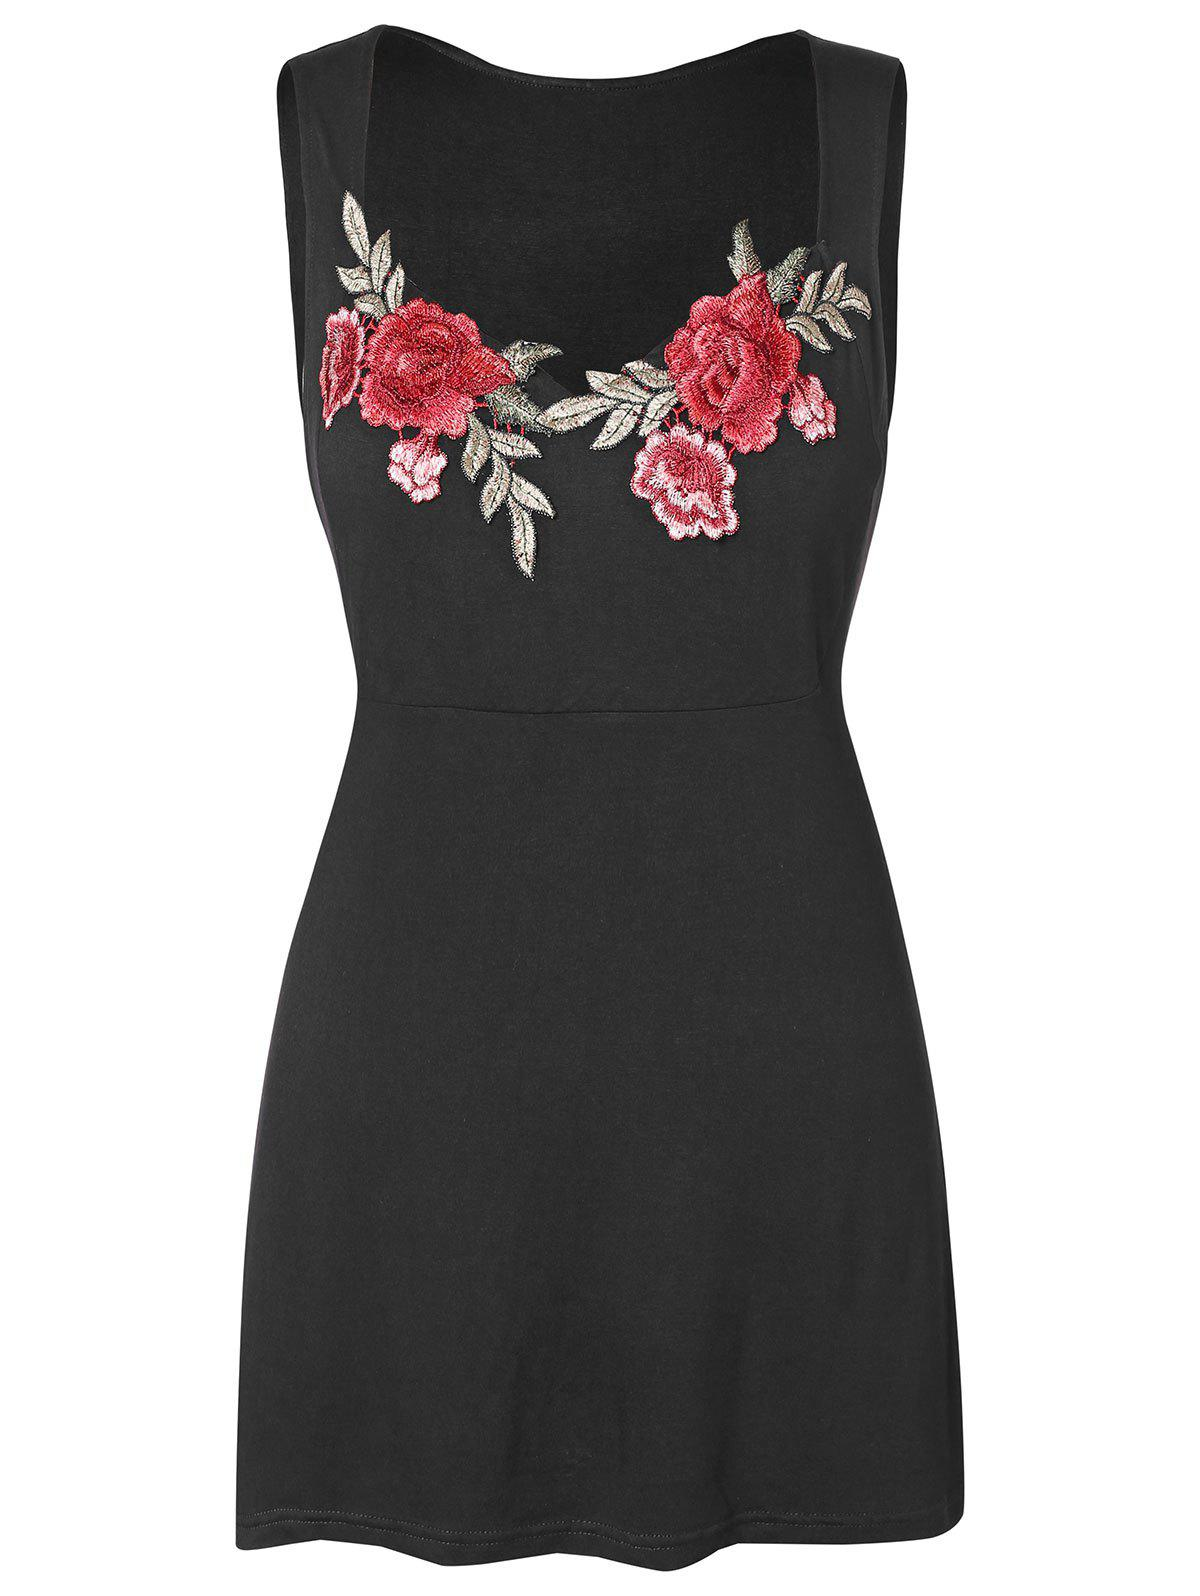 Plus Size Floral Embroidery Sweetheart Neck Tank Top - BLACK 3X